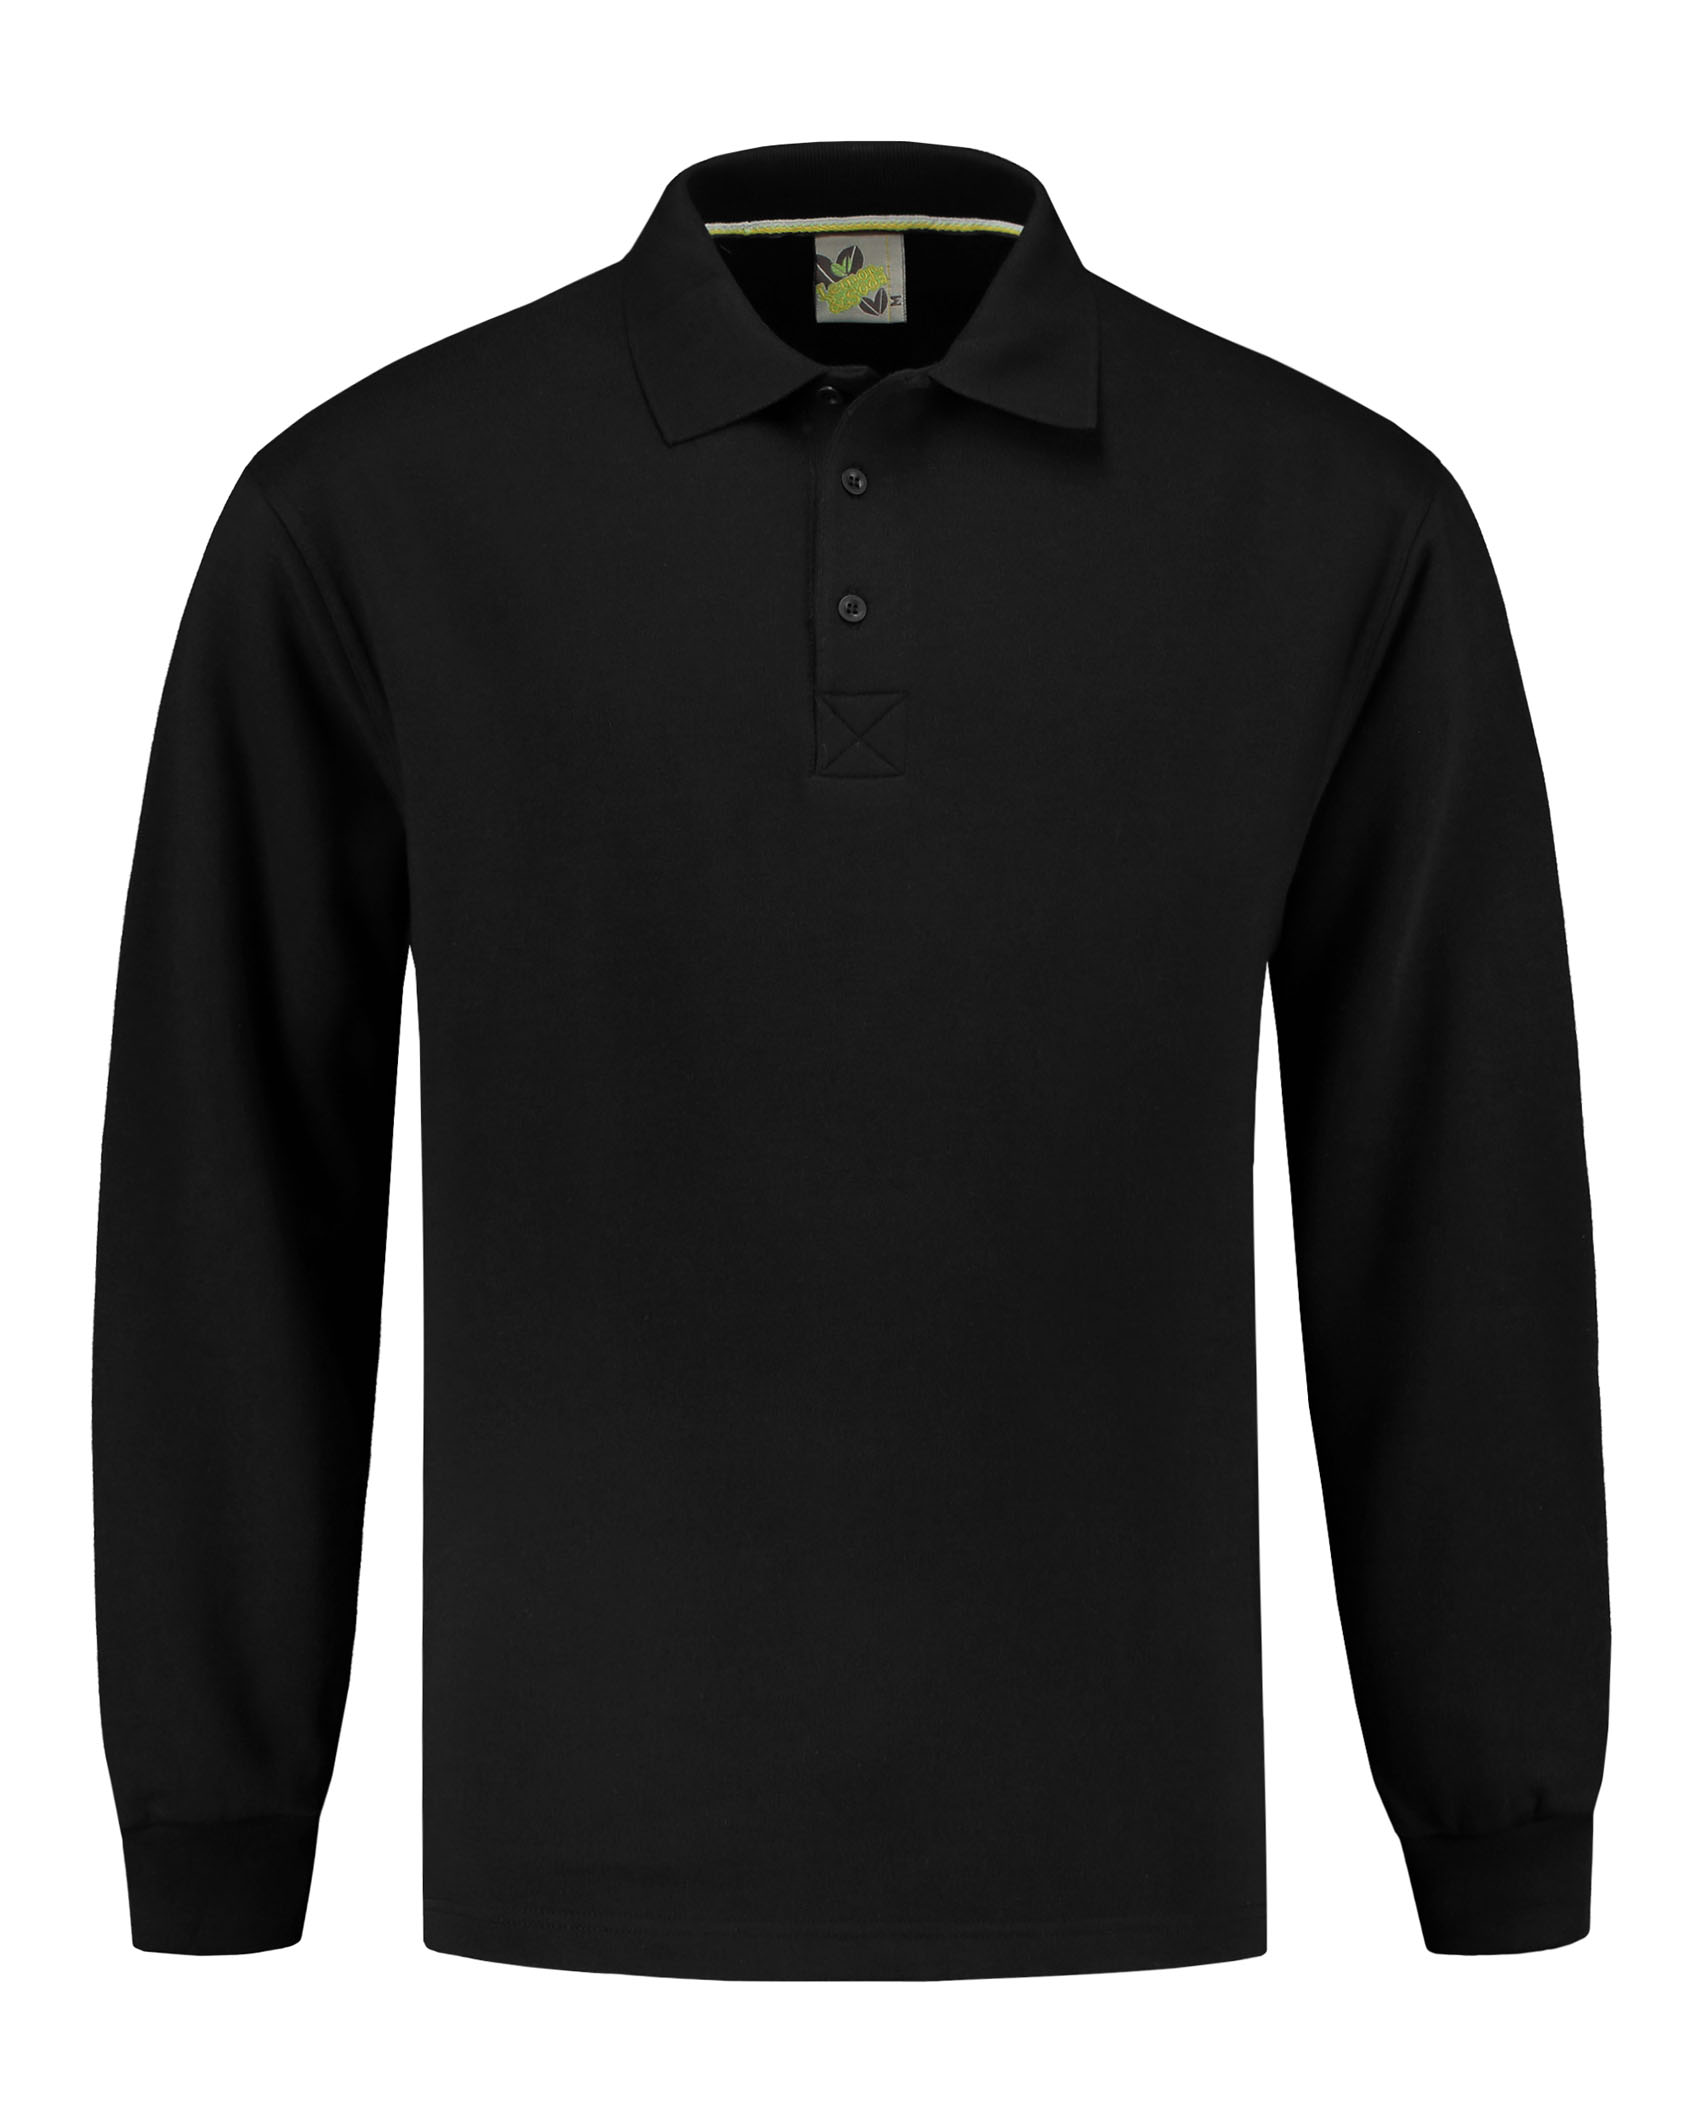 L&S Sweater Polo Open Hem